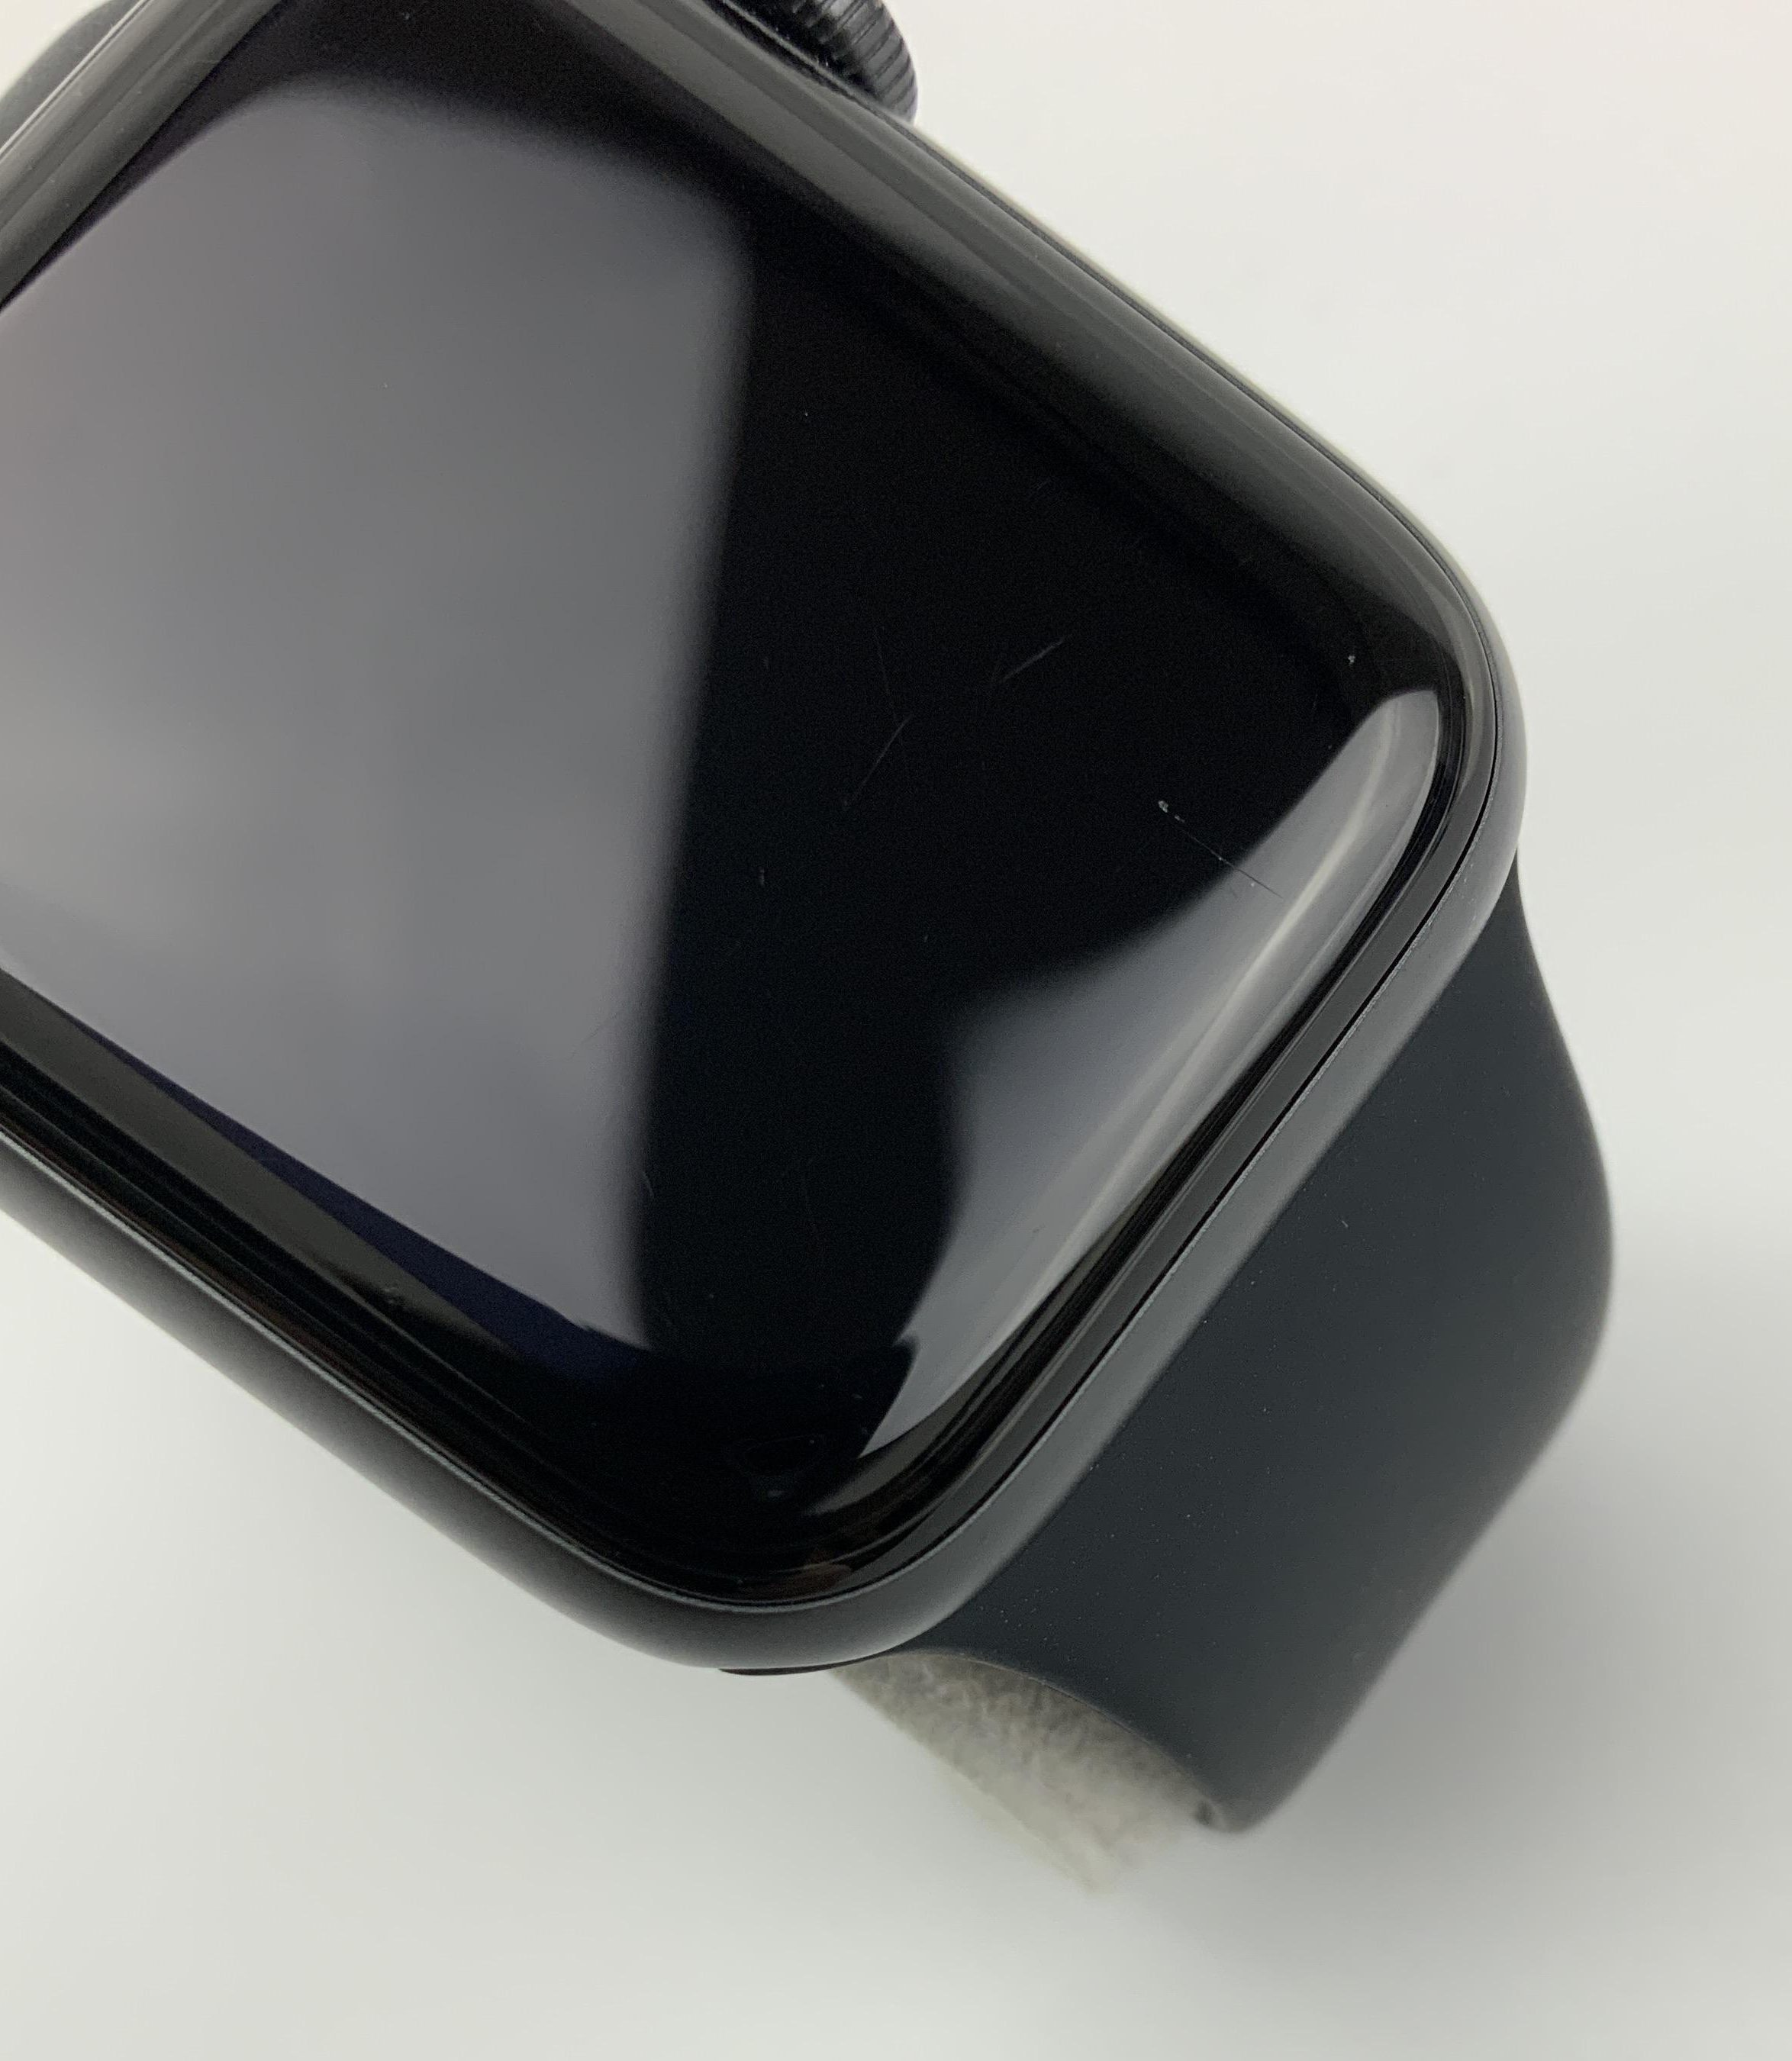 Watch Series 6 Aluminum Cellular (40mm), Space Gray, Afbeelding 3